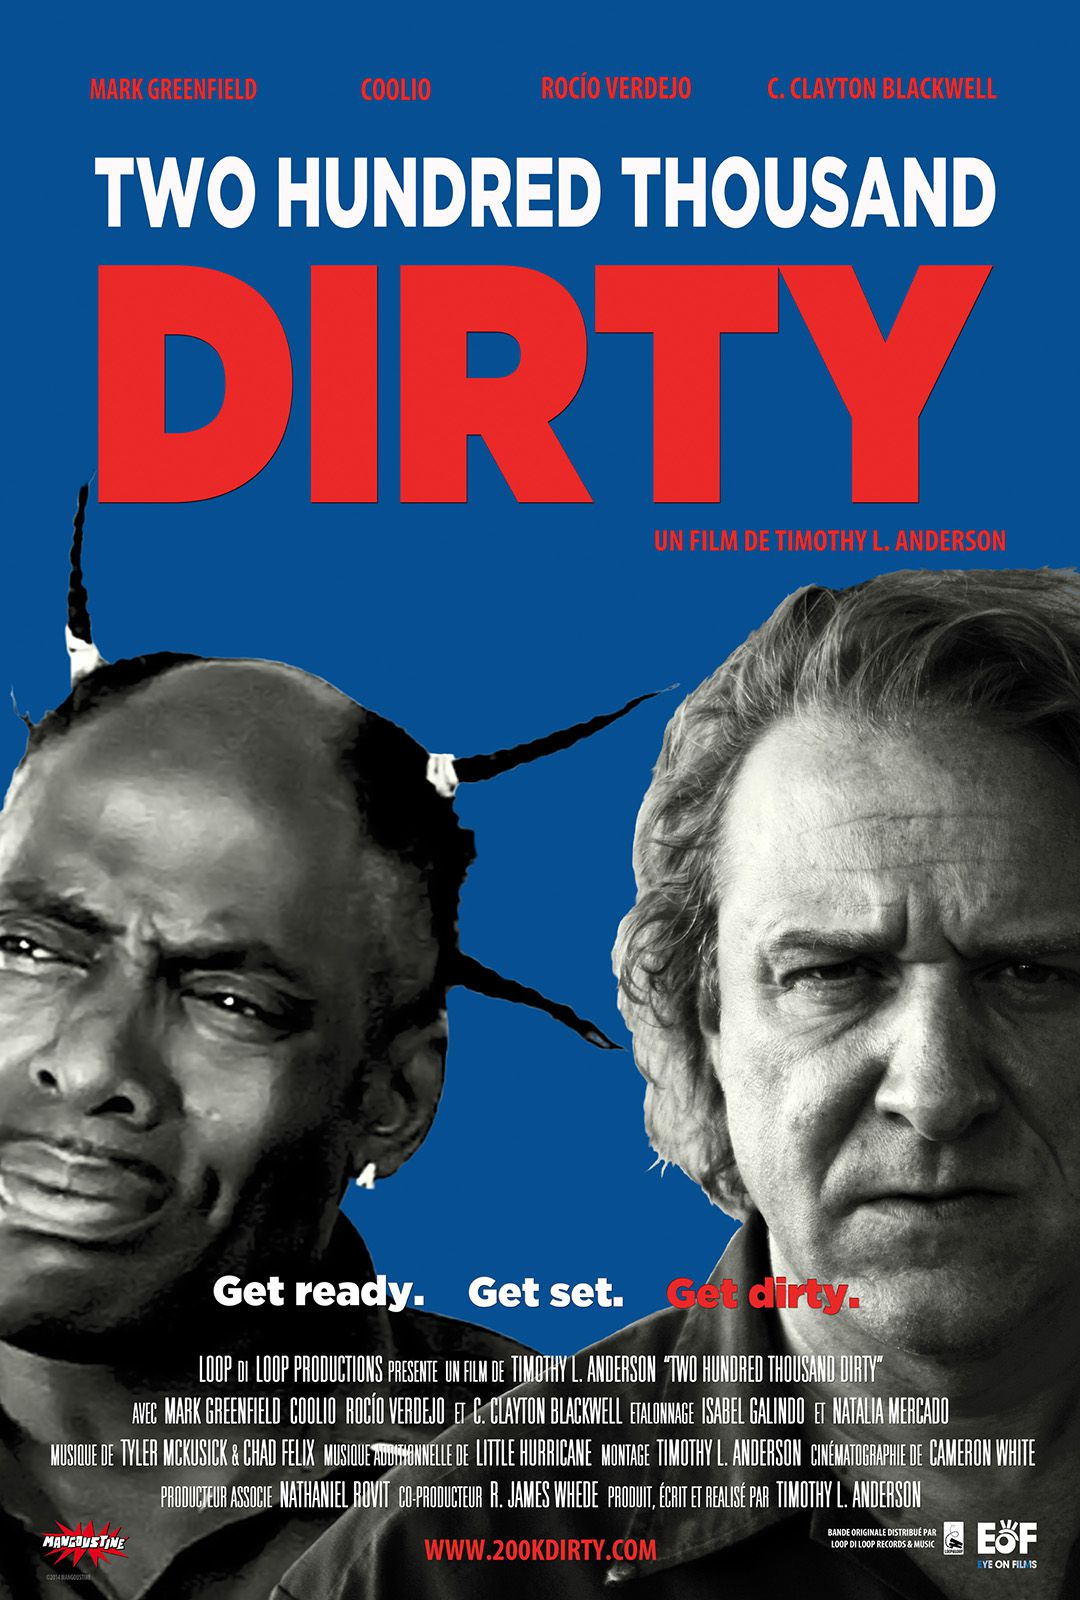 Two Hundred Thousand Dirty - Film (2014)